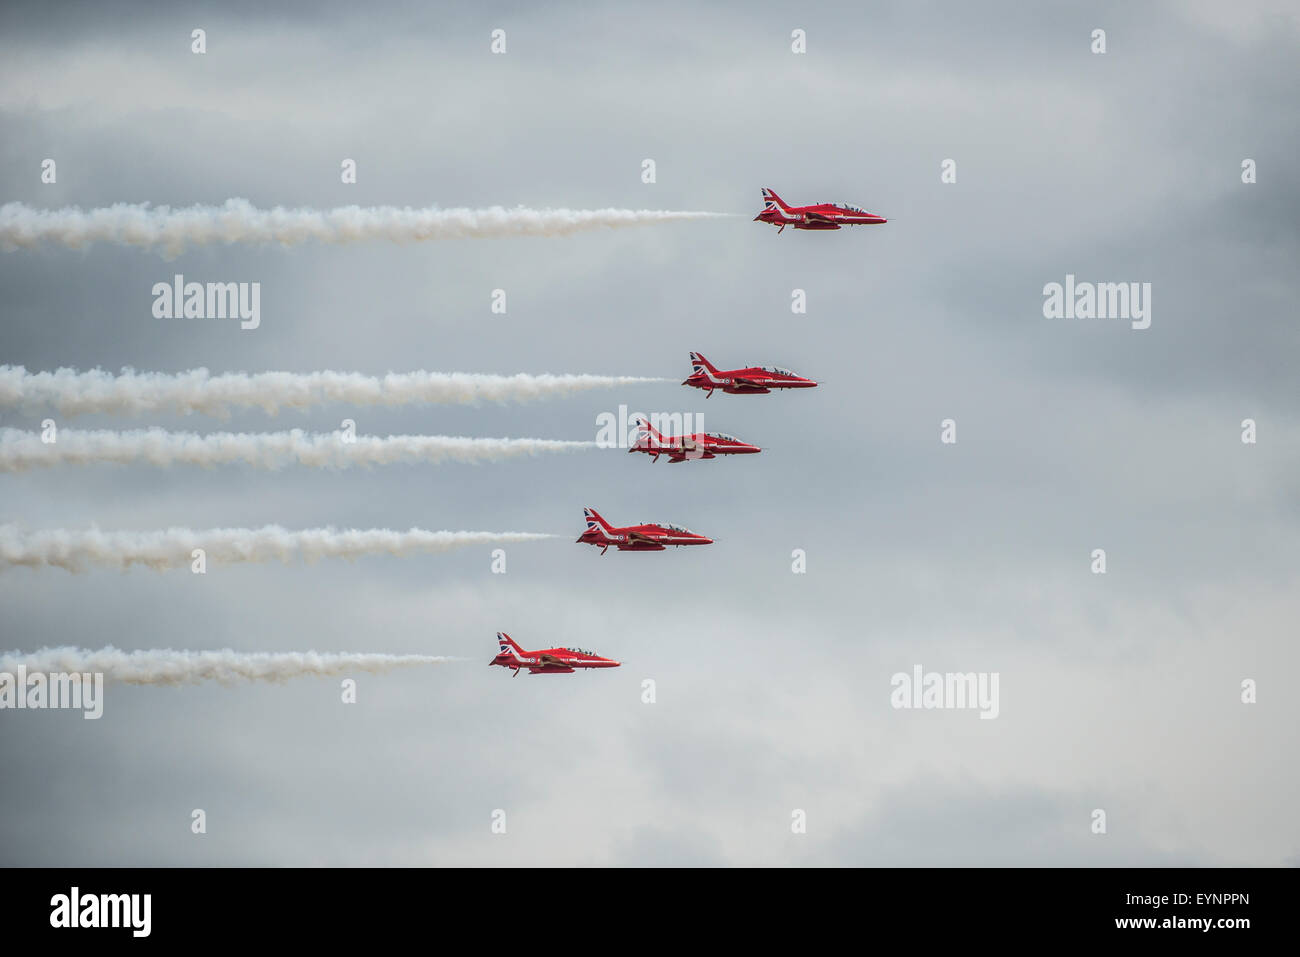 The Red Arrows, aerobatic display team performing in the skies above the Fairford International Air Tattoo - Stock Image